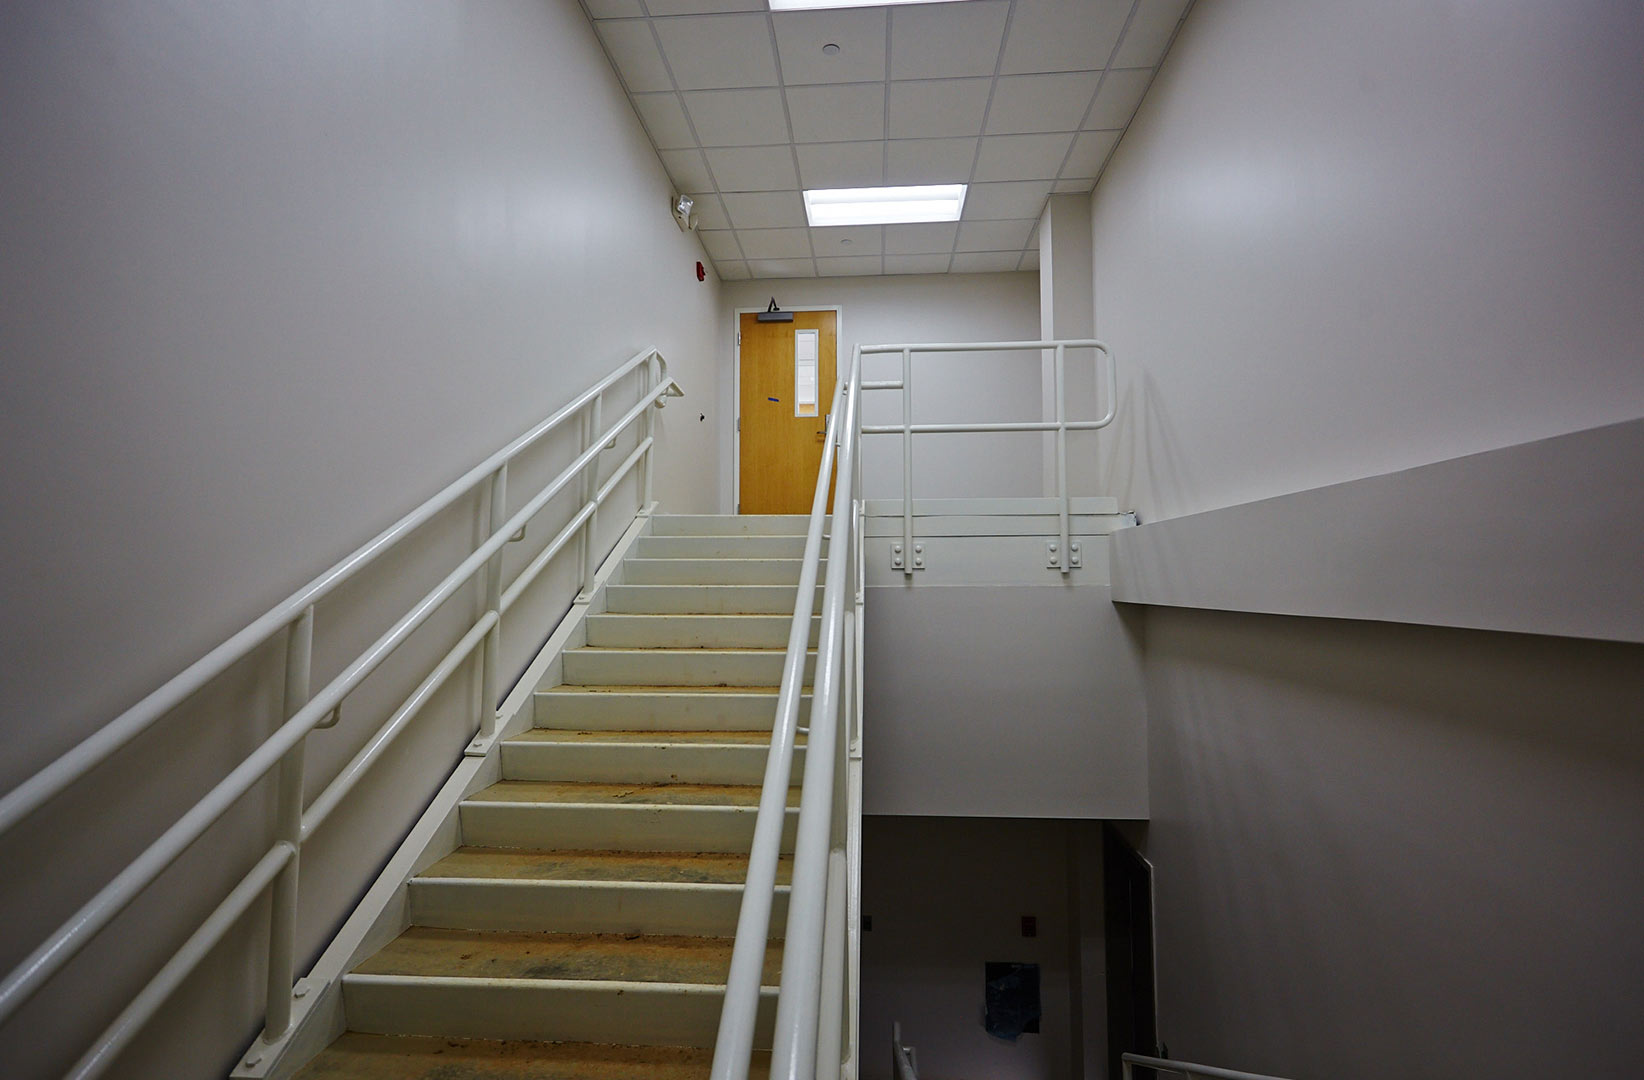 Warehouse-construction-interior-stairwell-photo